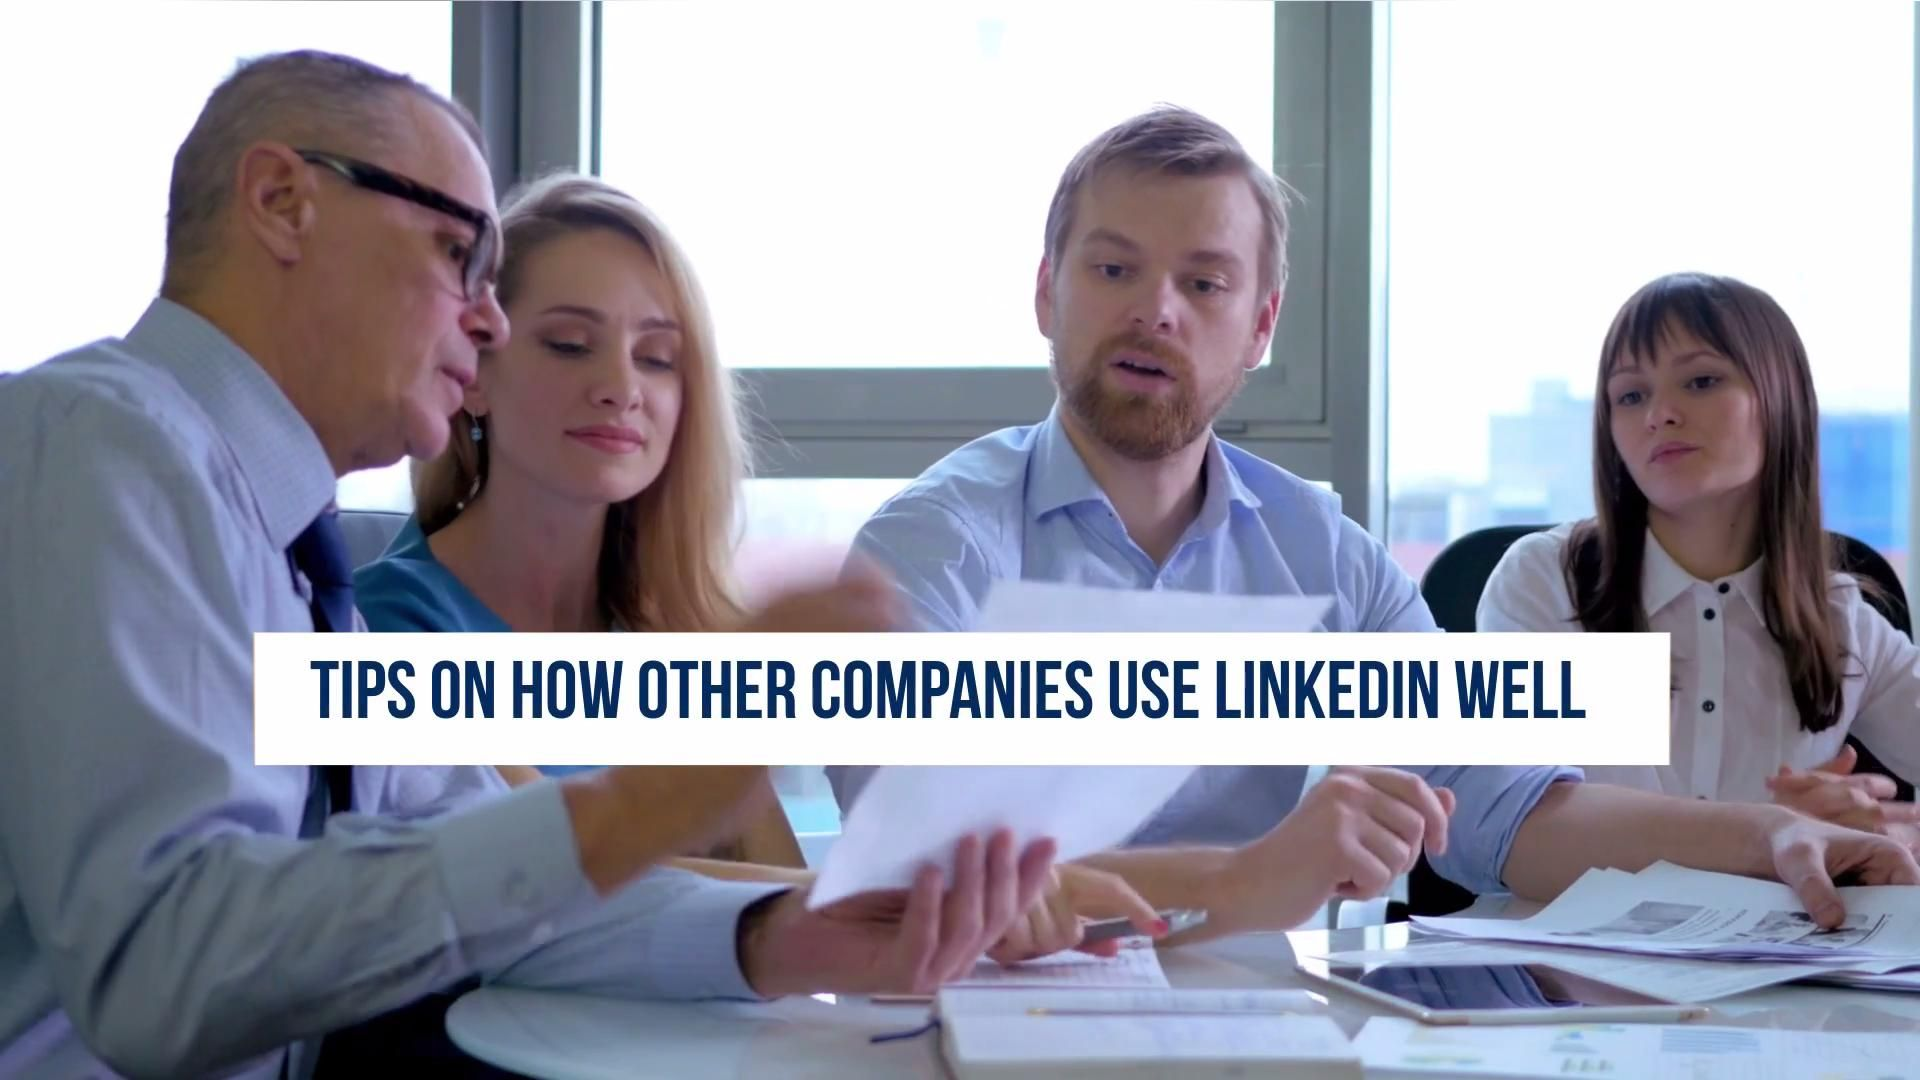 Here are ways companies can use LinkedIn well.